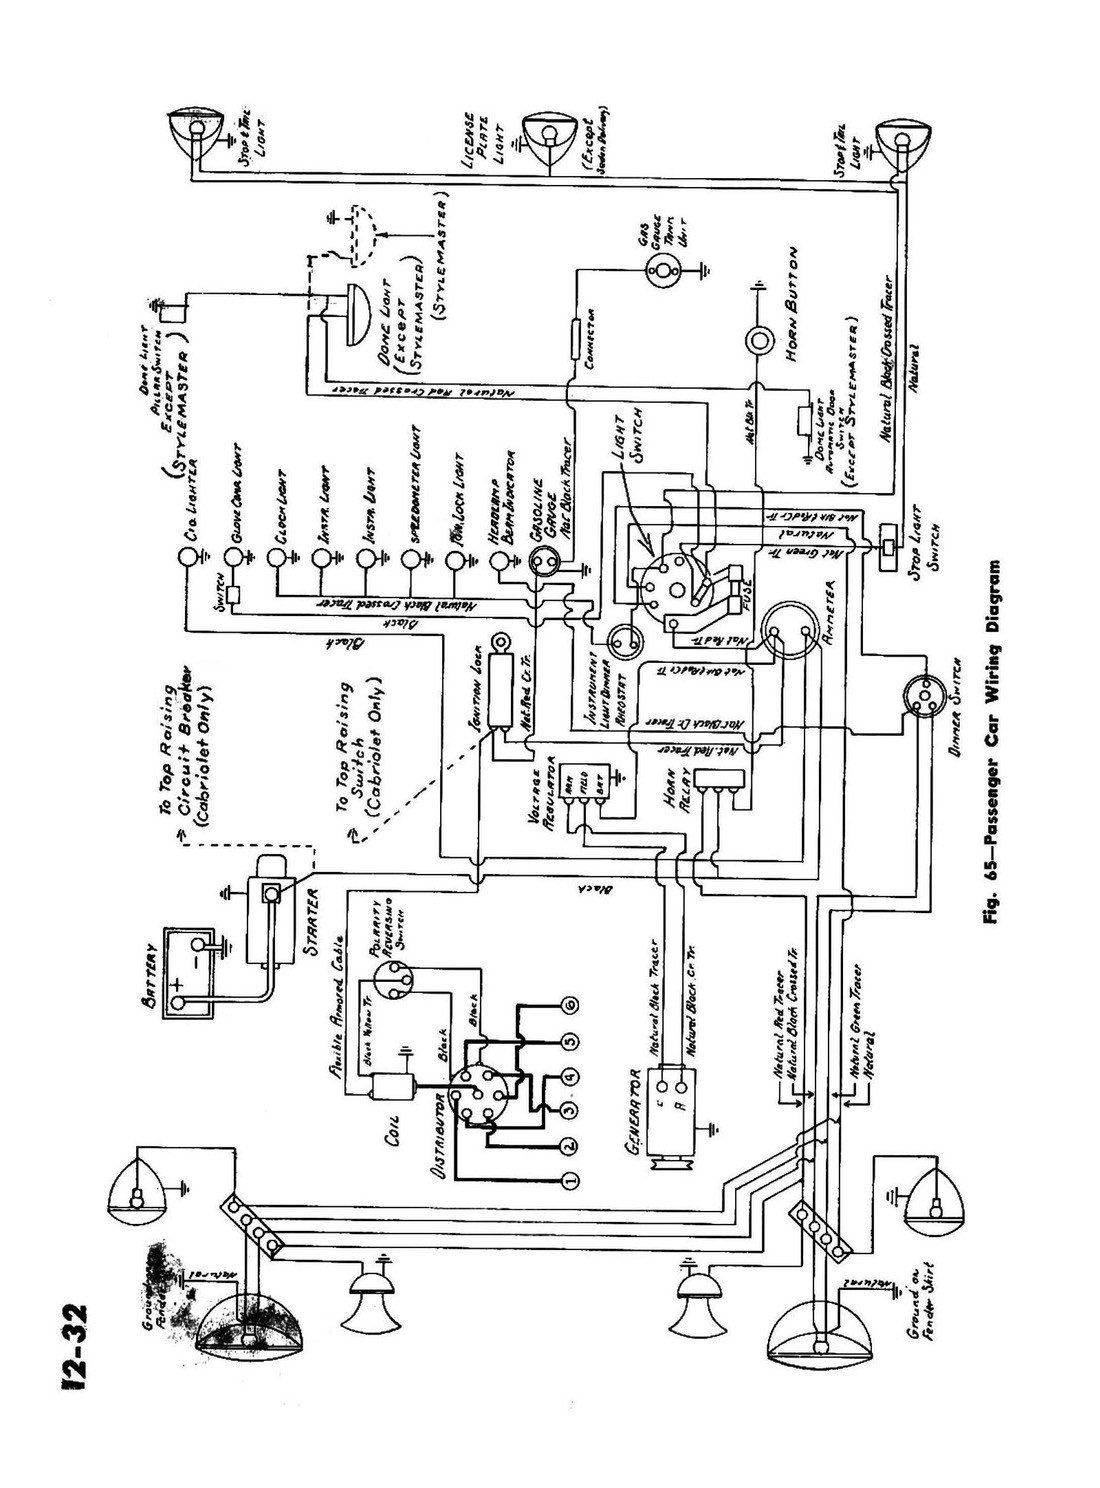 small resolution of wiring diagram electric schematic circuit building fancy auto pertaining to auto electrical schematic